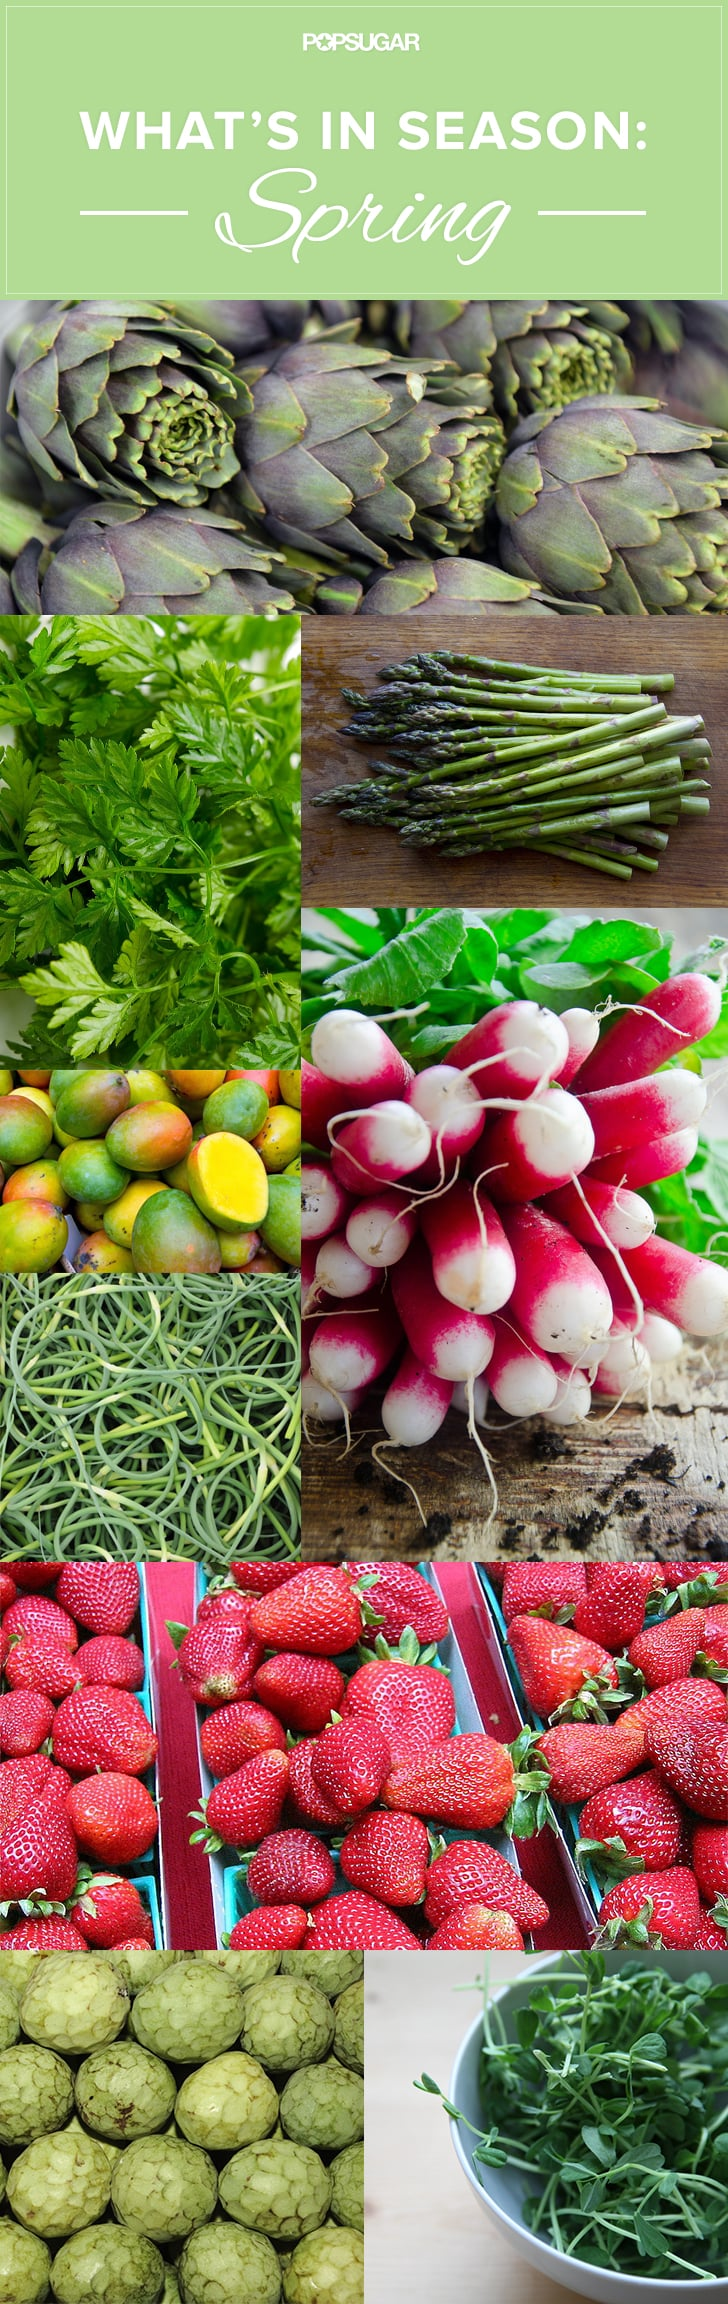 A Seasonal Eater's Guide to Spring Produce